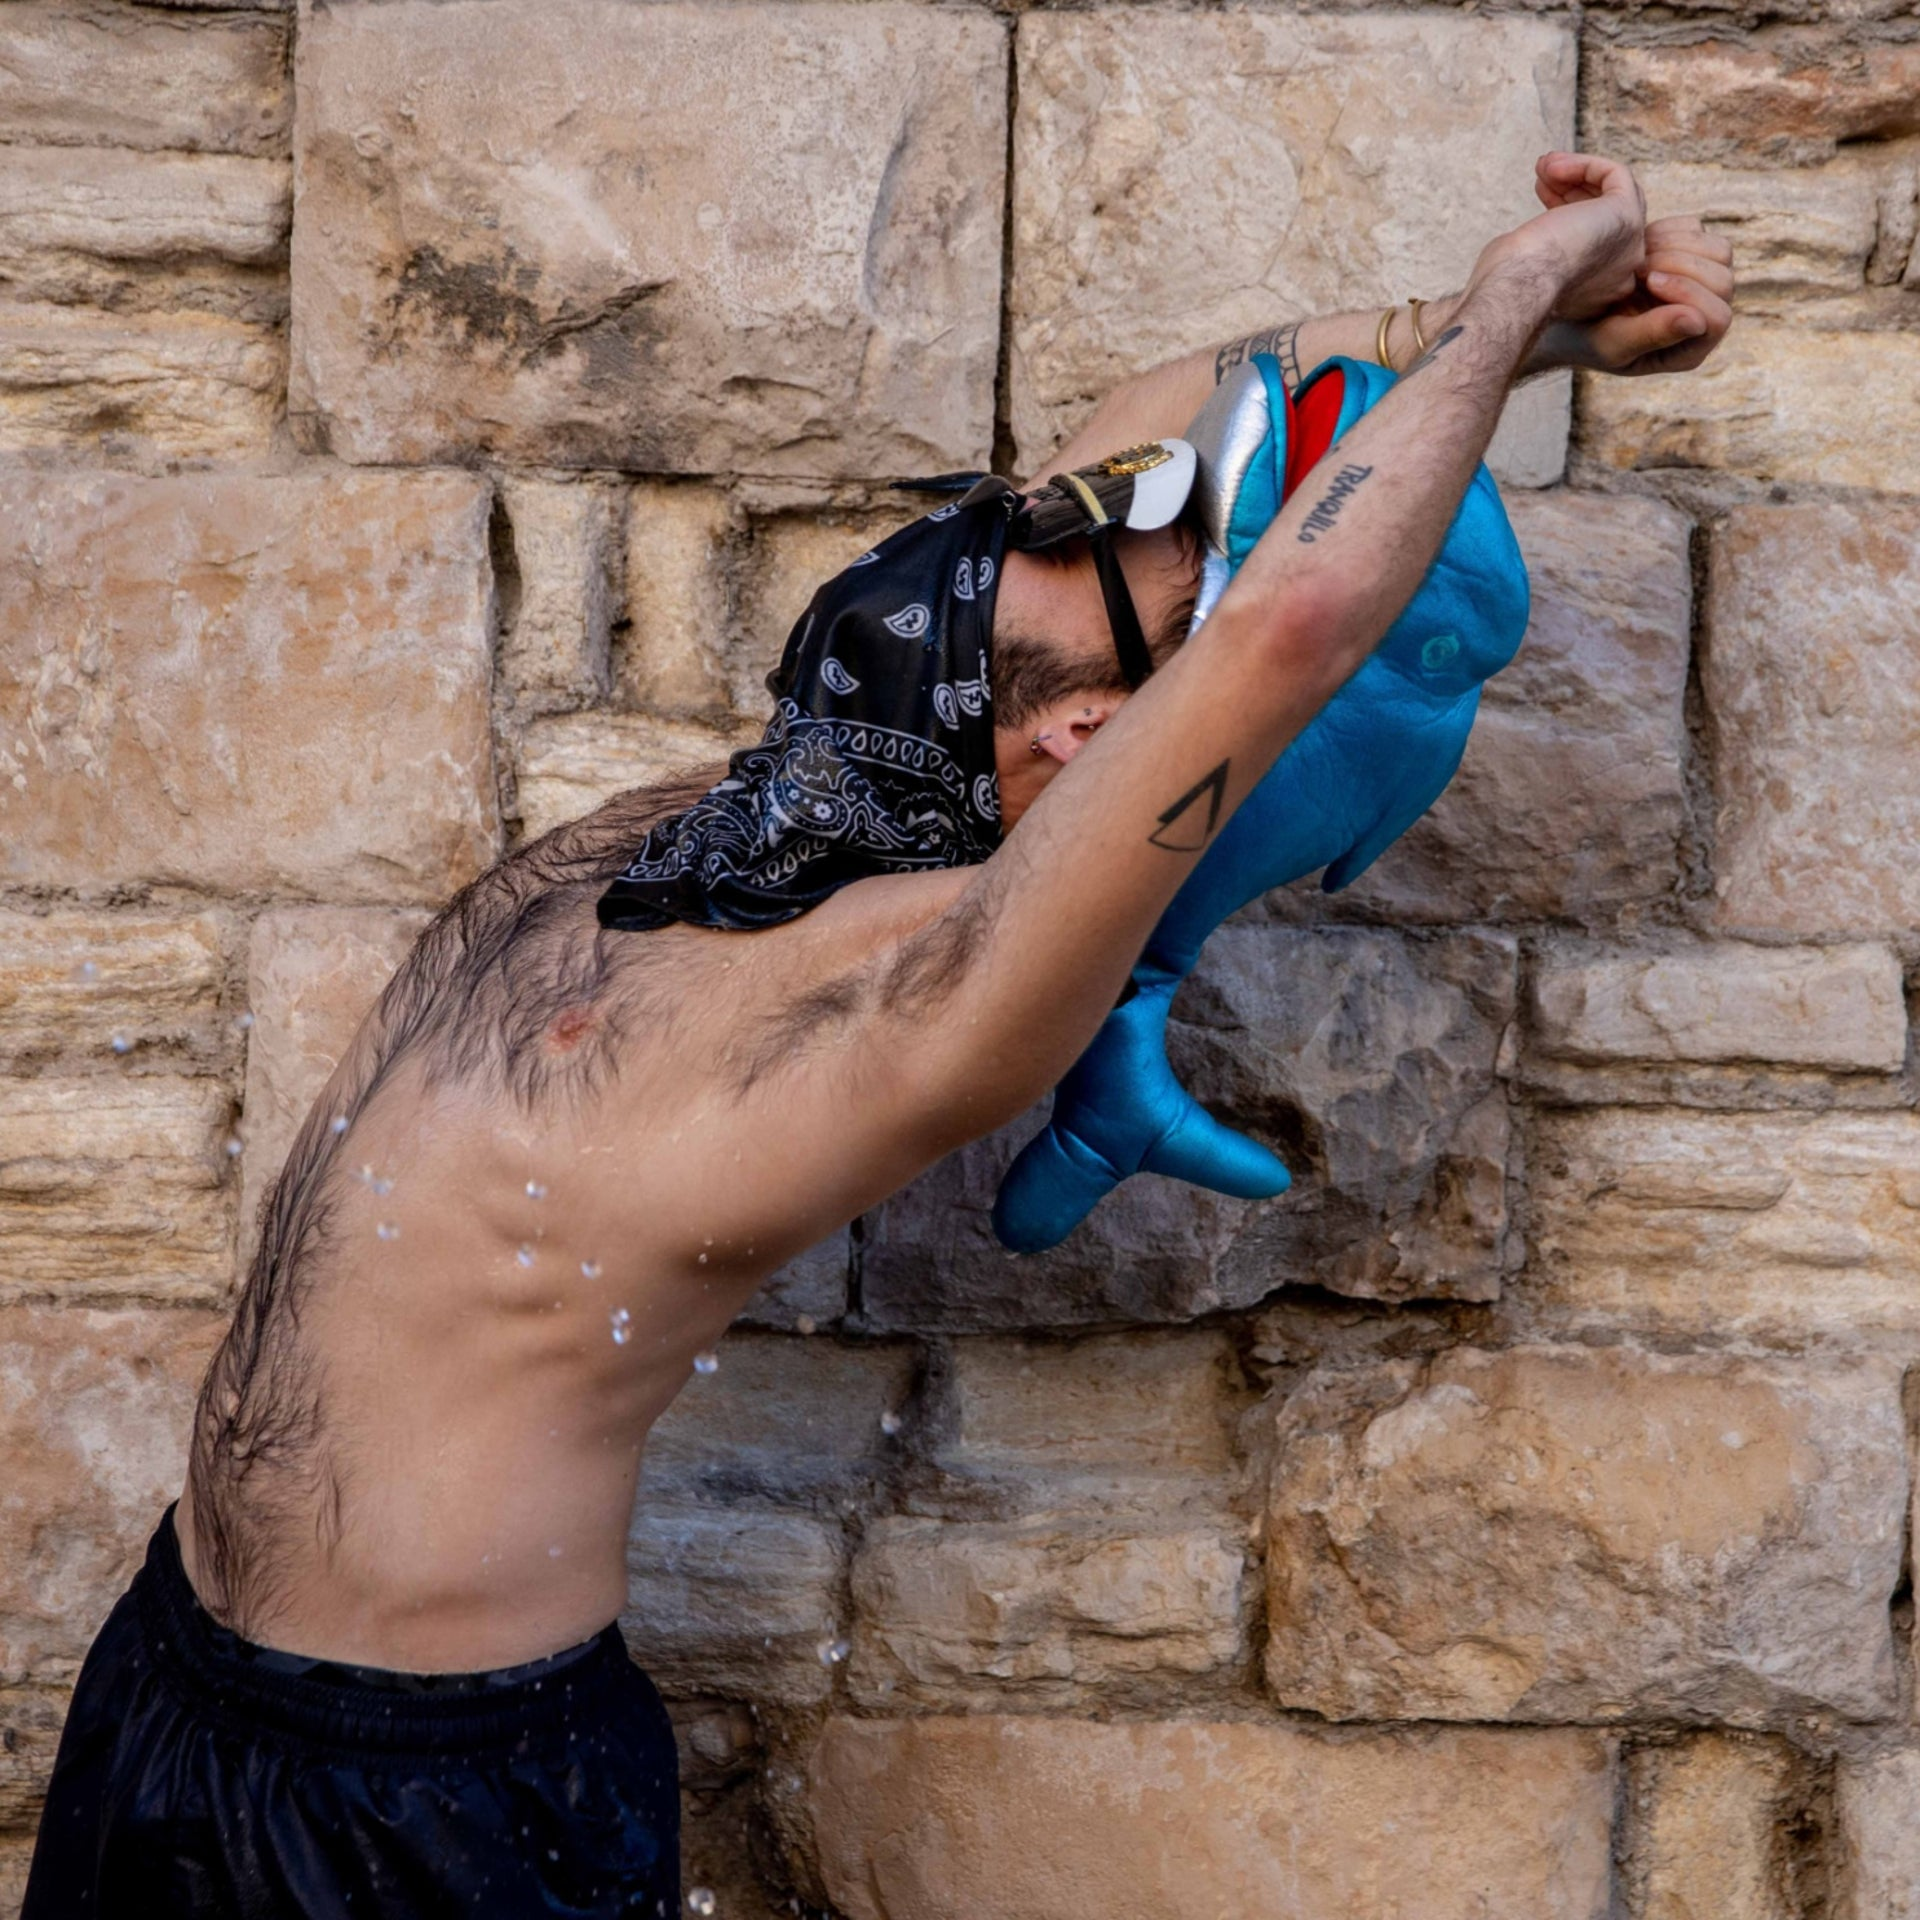 A protester wearing a dolphin shaped hat in Jerusalem, August 2020.